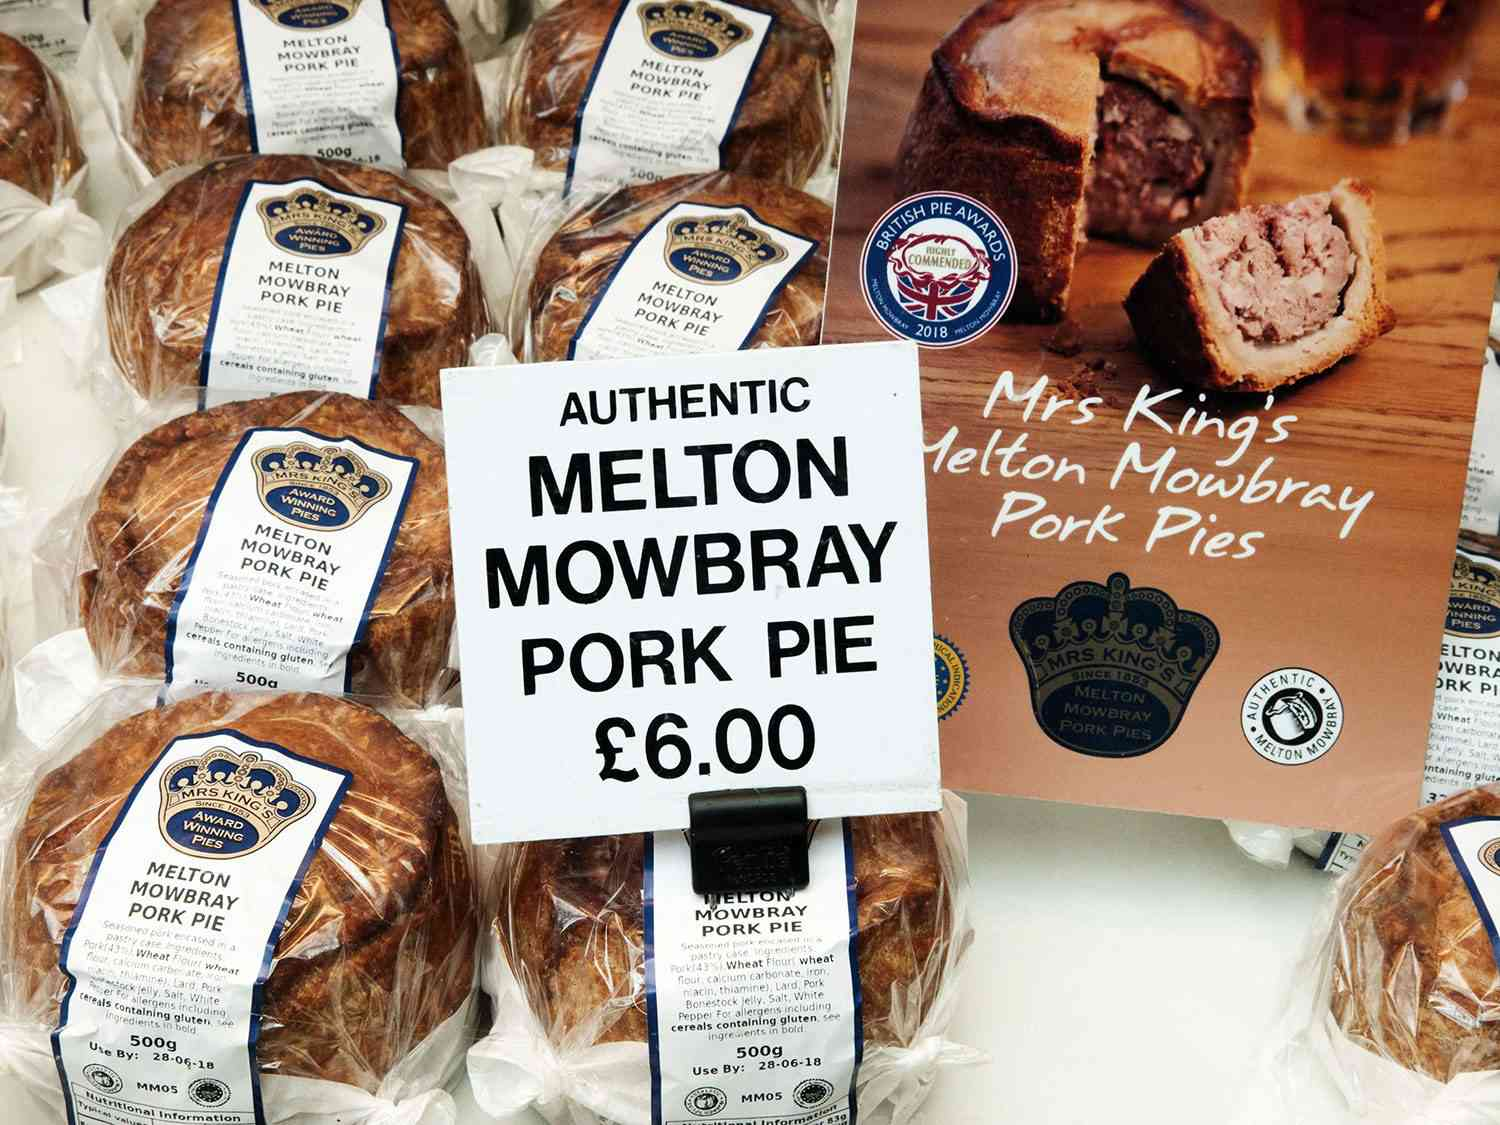 A display of wrapped pork pies for sale, with a sign that says